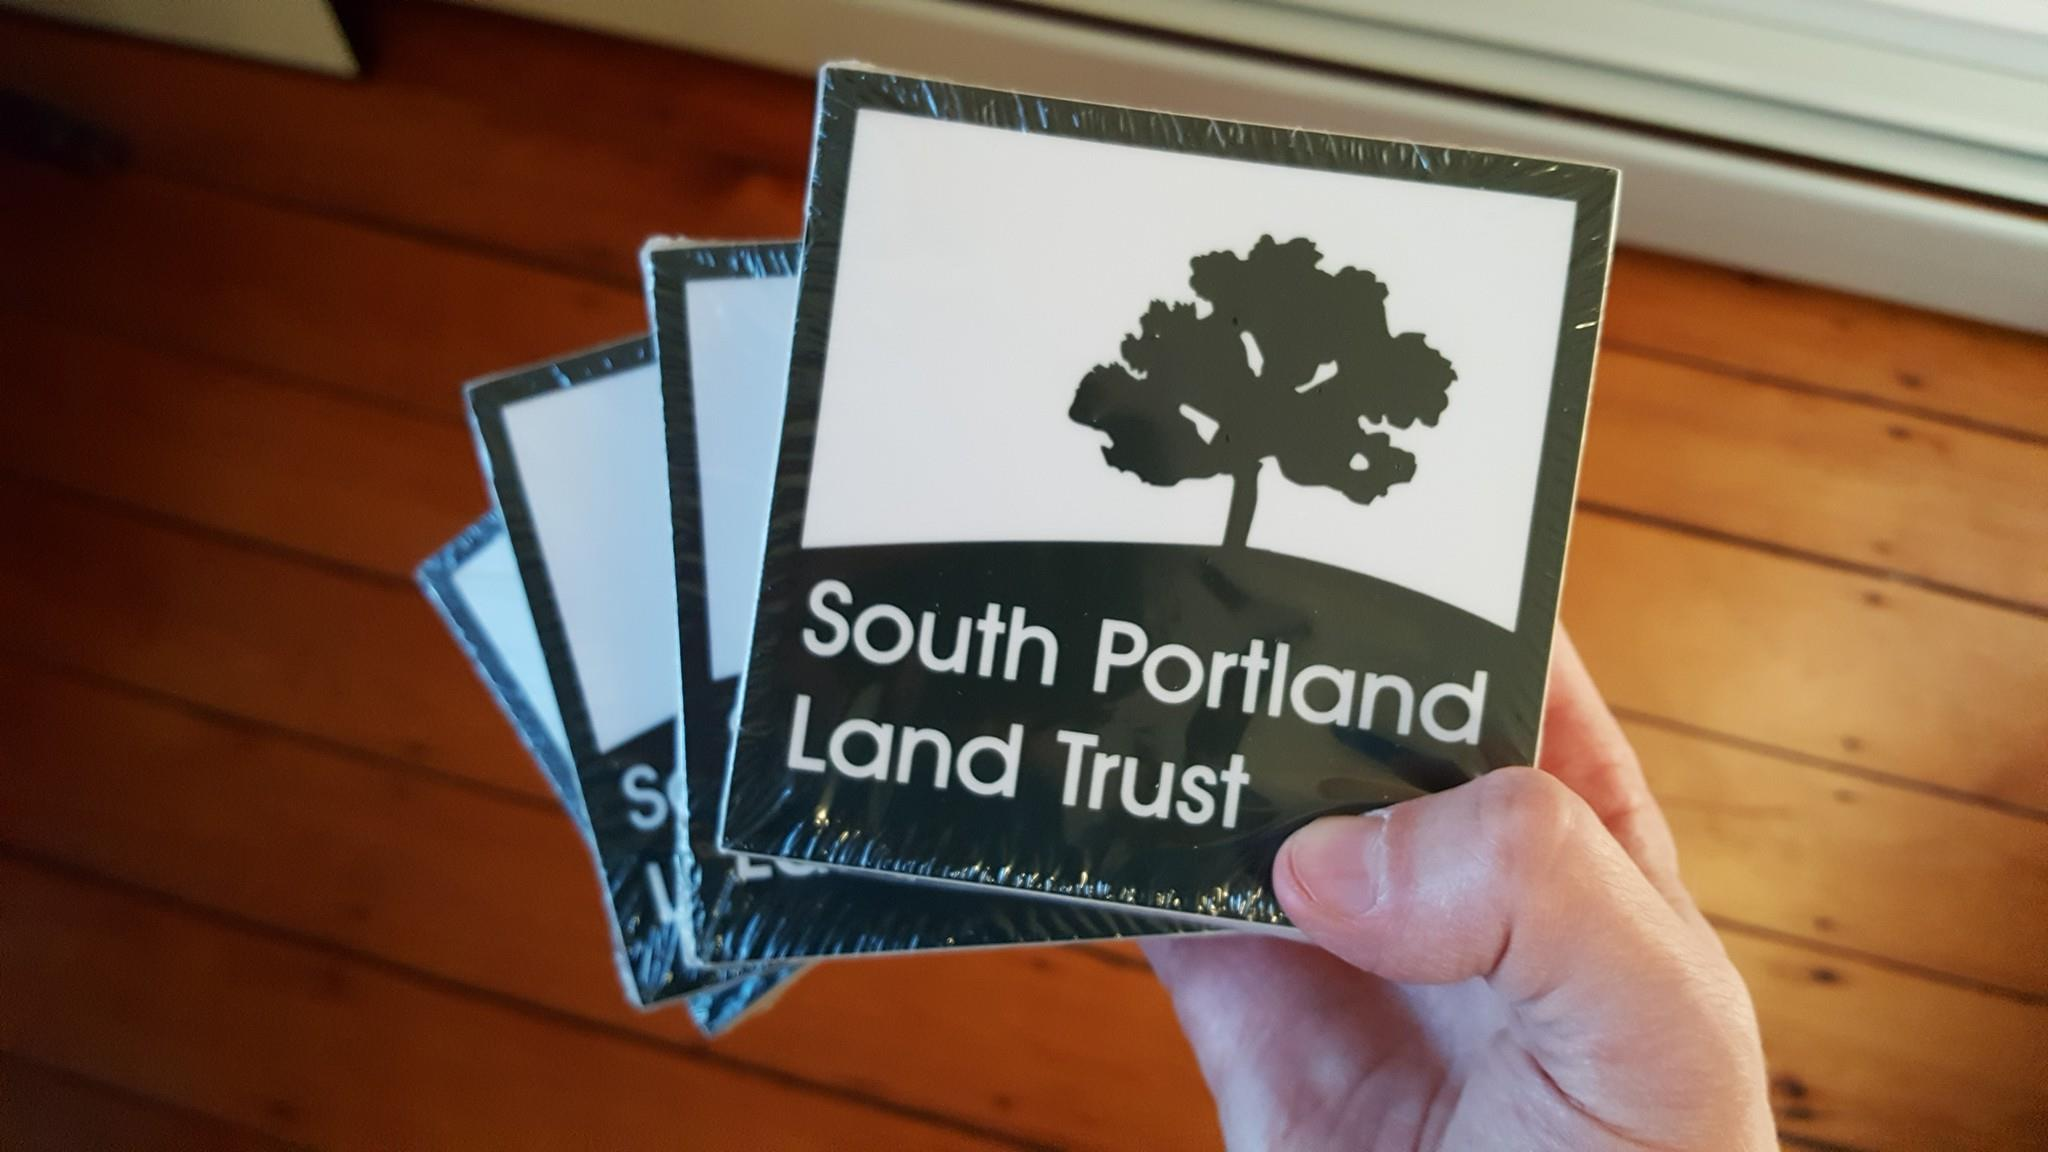 Great Stickers - Exactly as Ordered